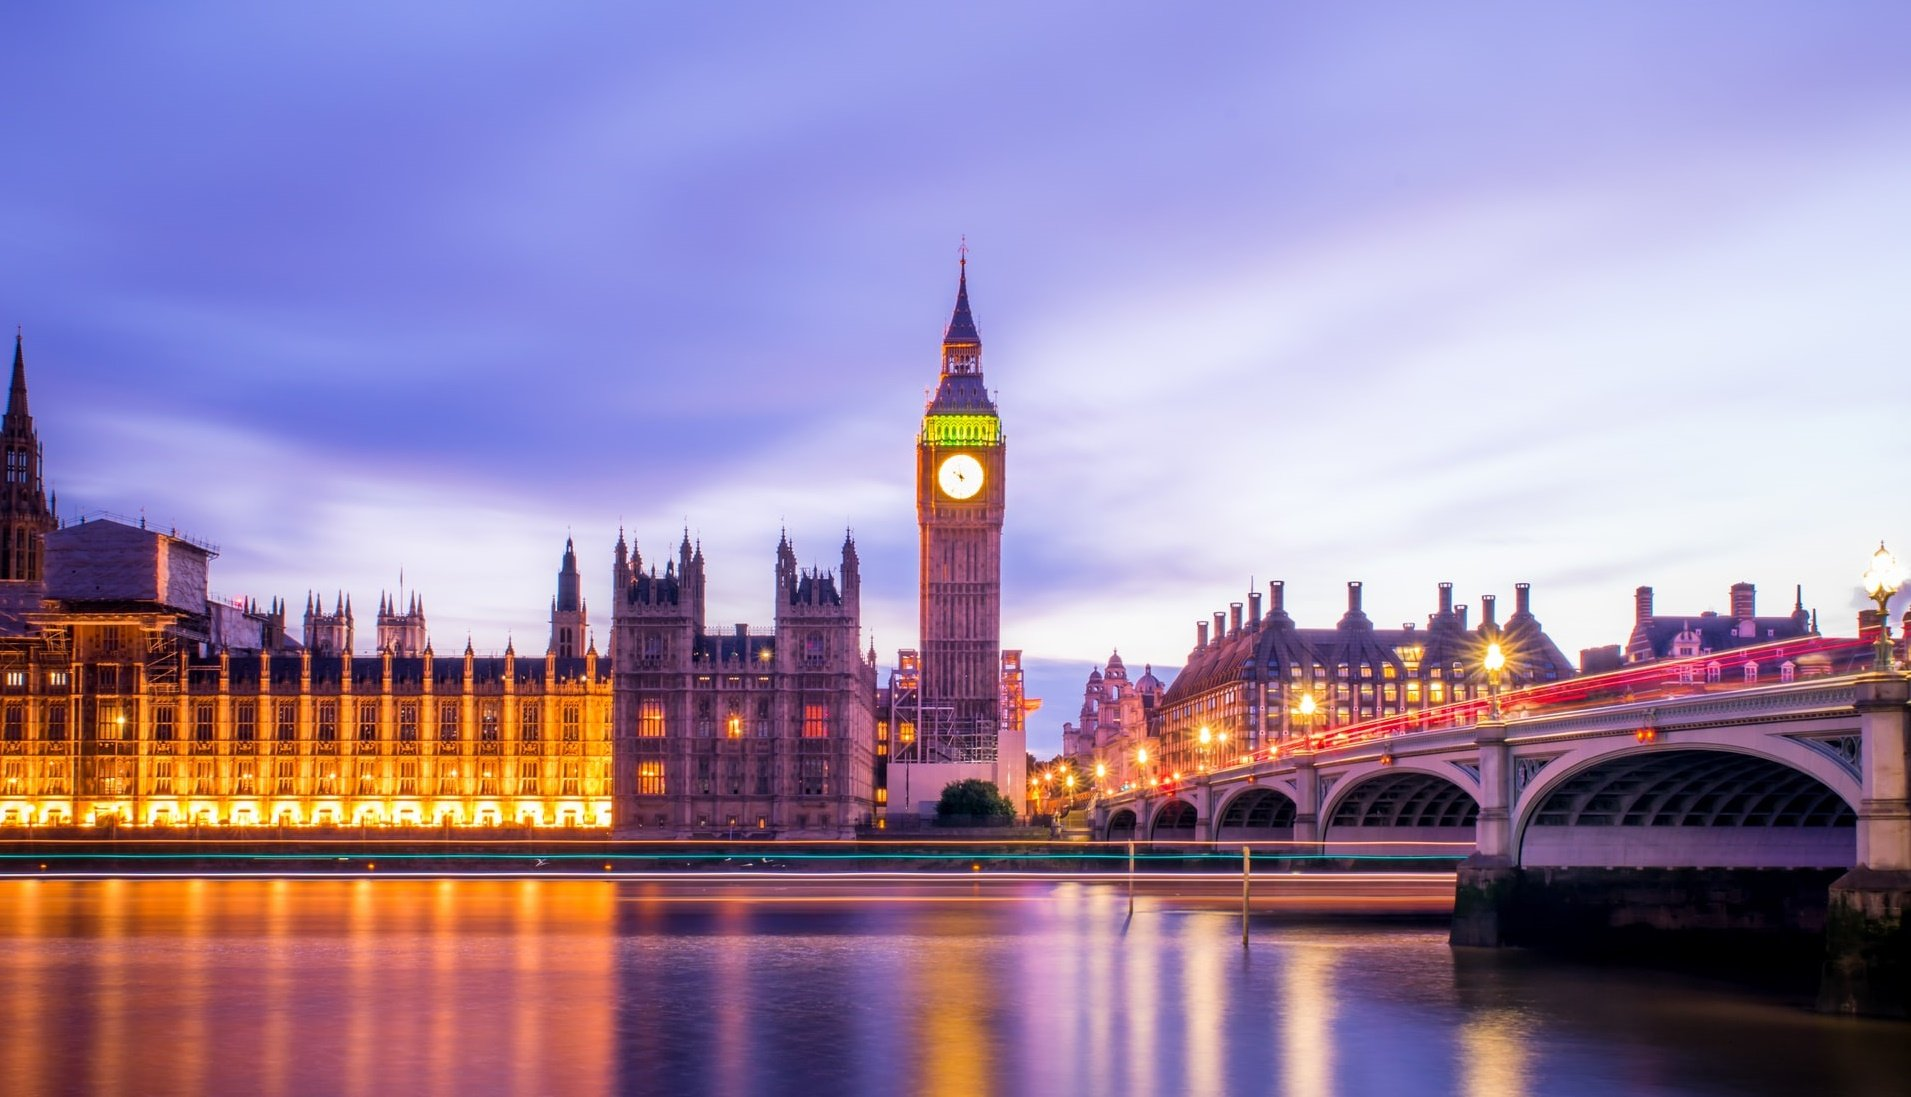 Houses of Parliament and Big Ben at dusk